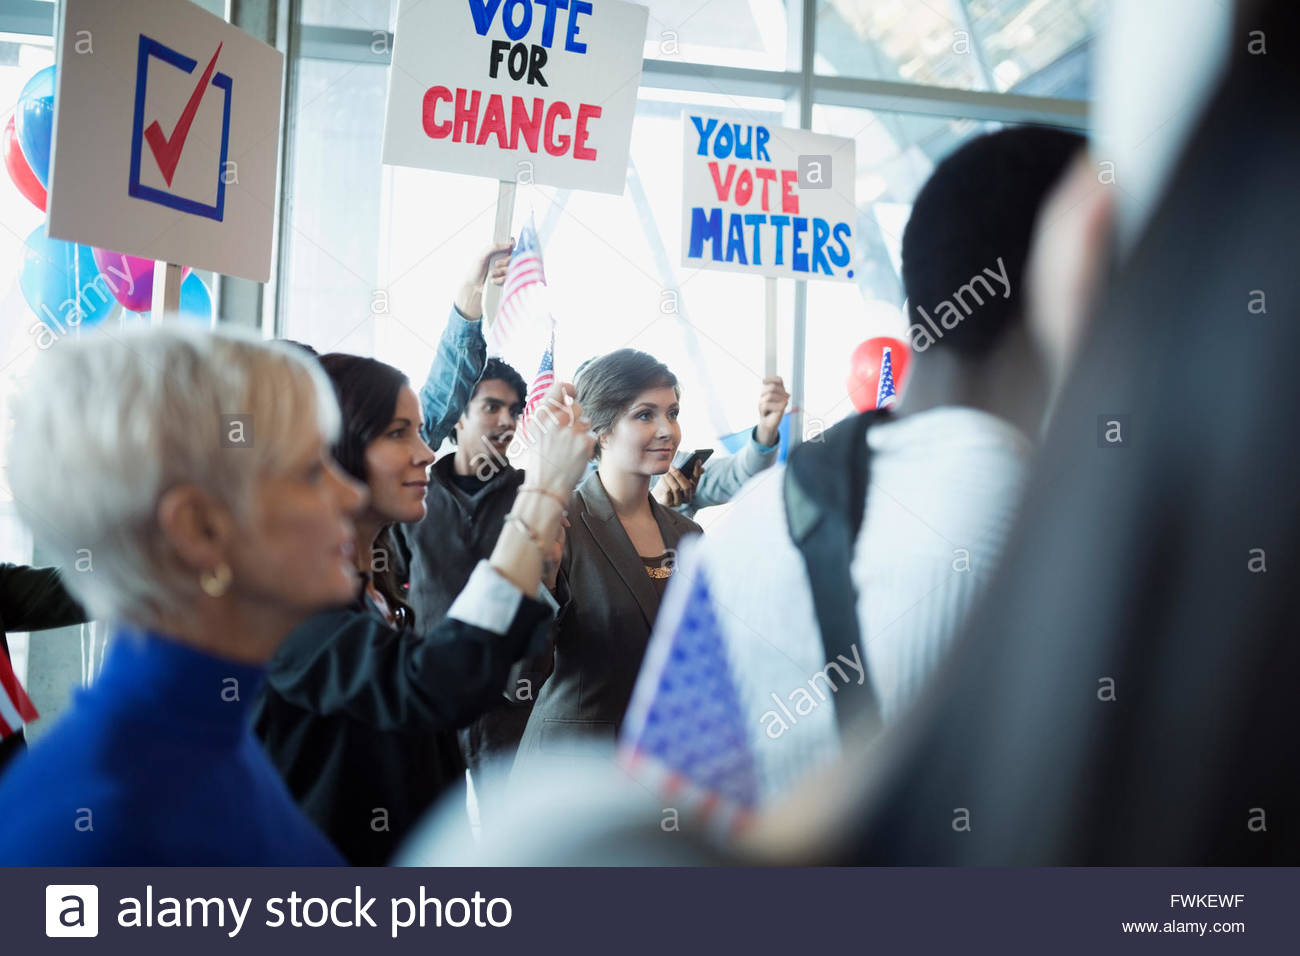 Audience with signs at political rally - Stock Image